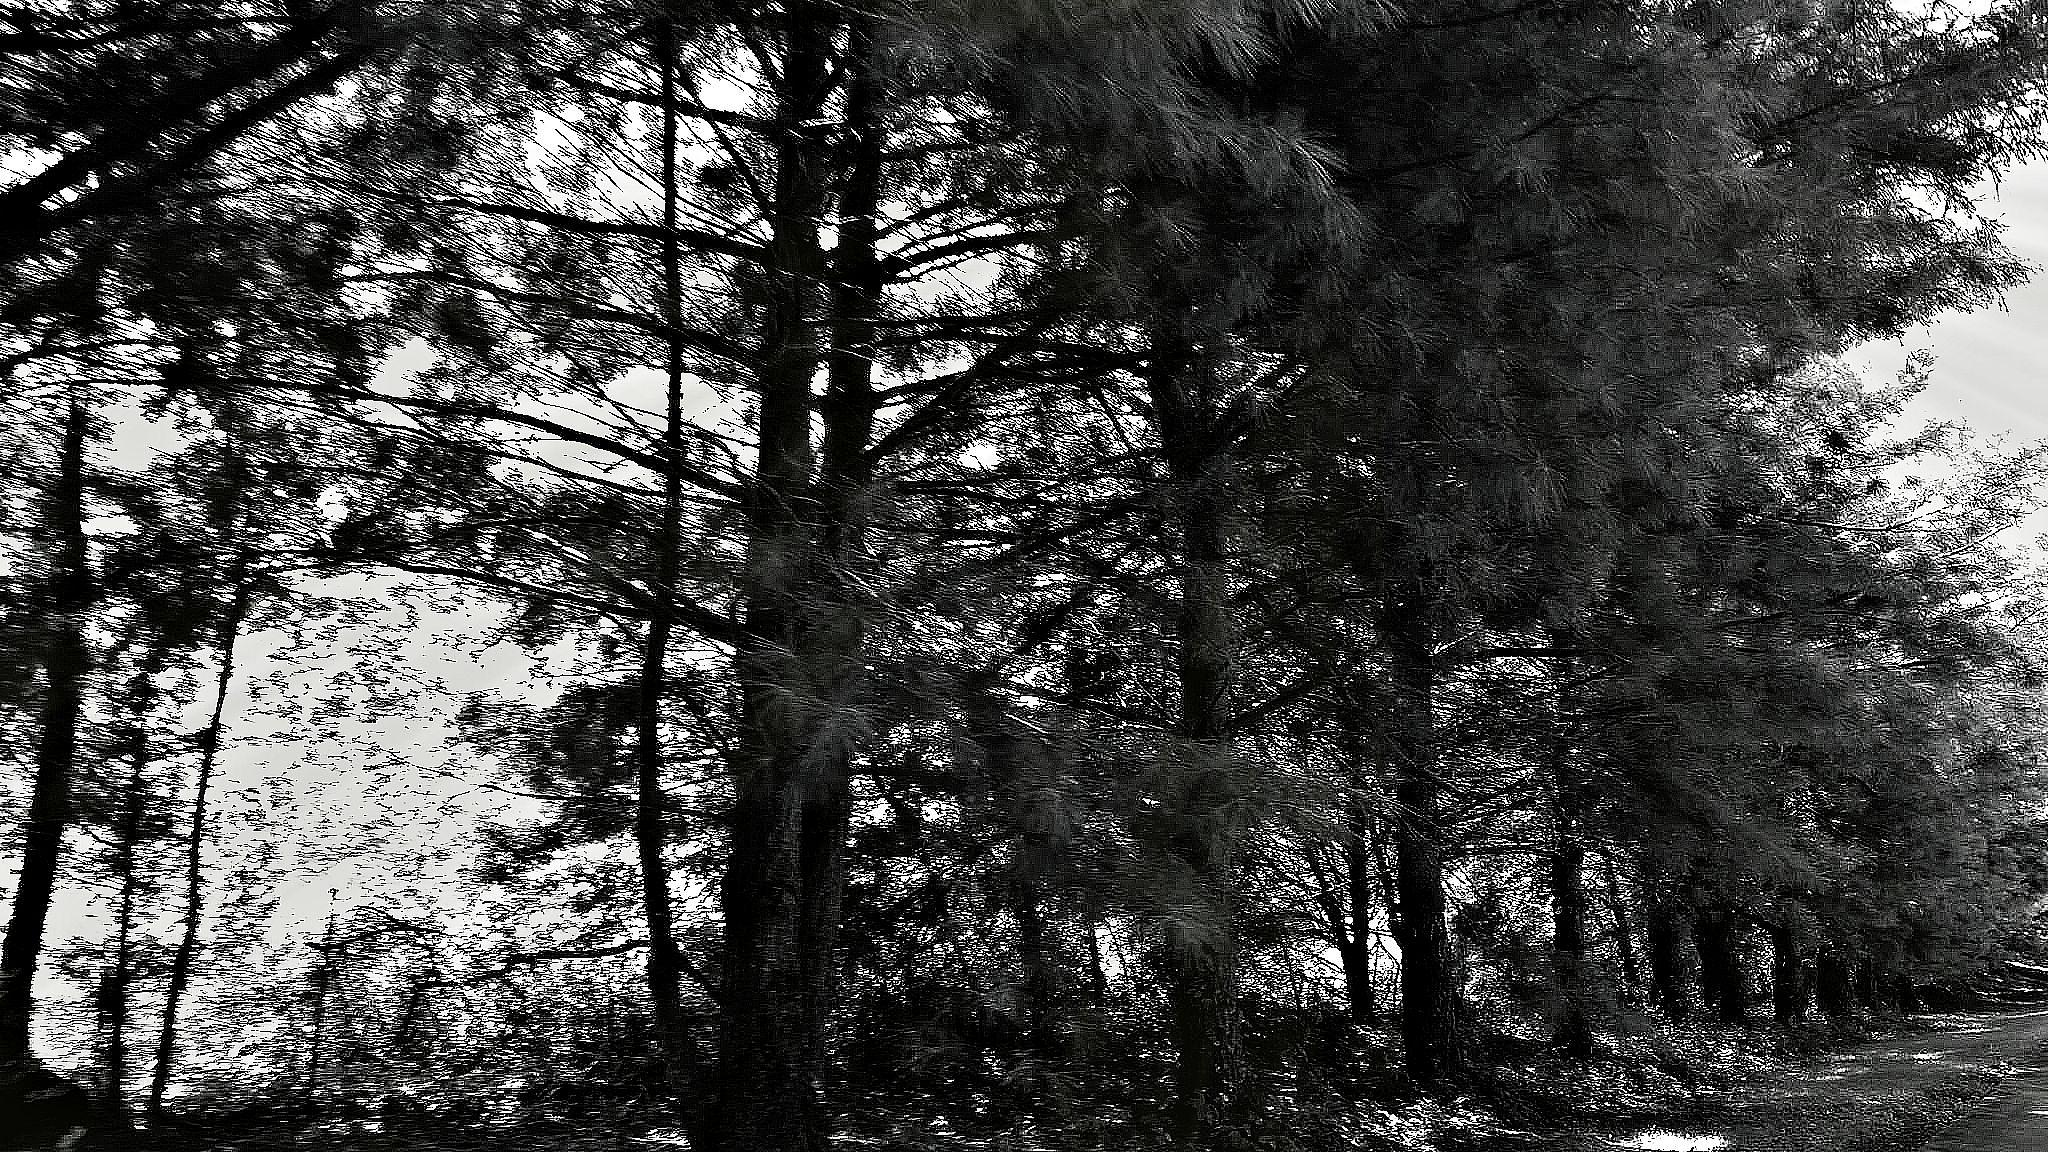 Just trees by marie.short.18